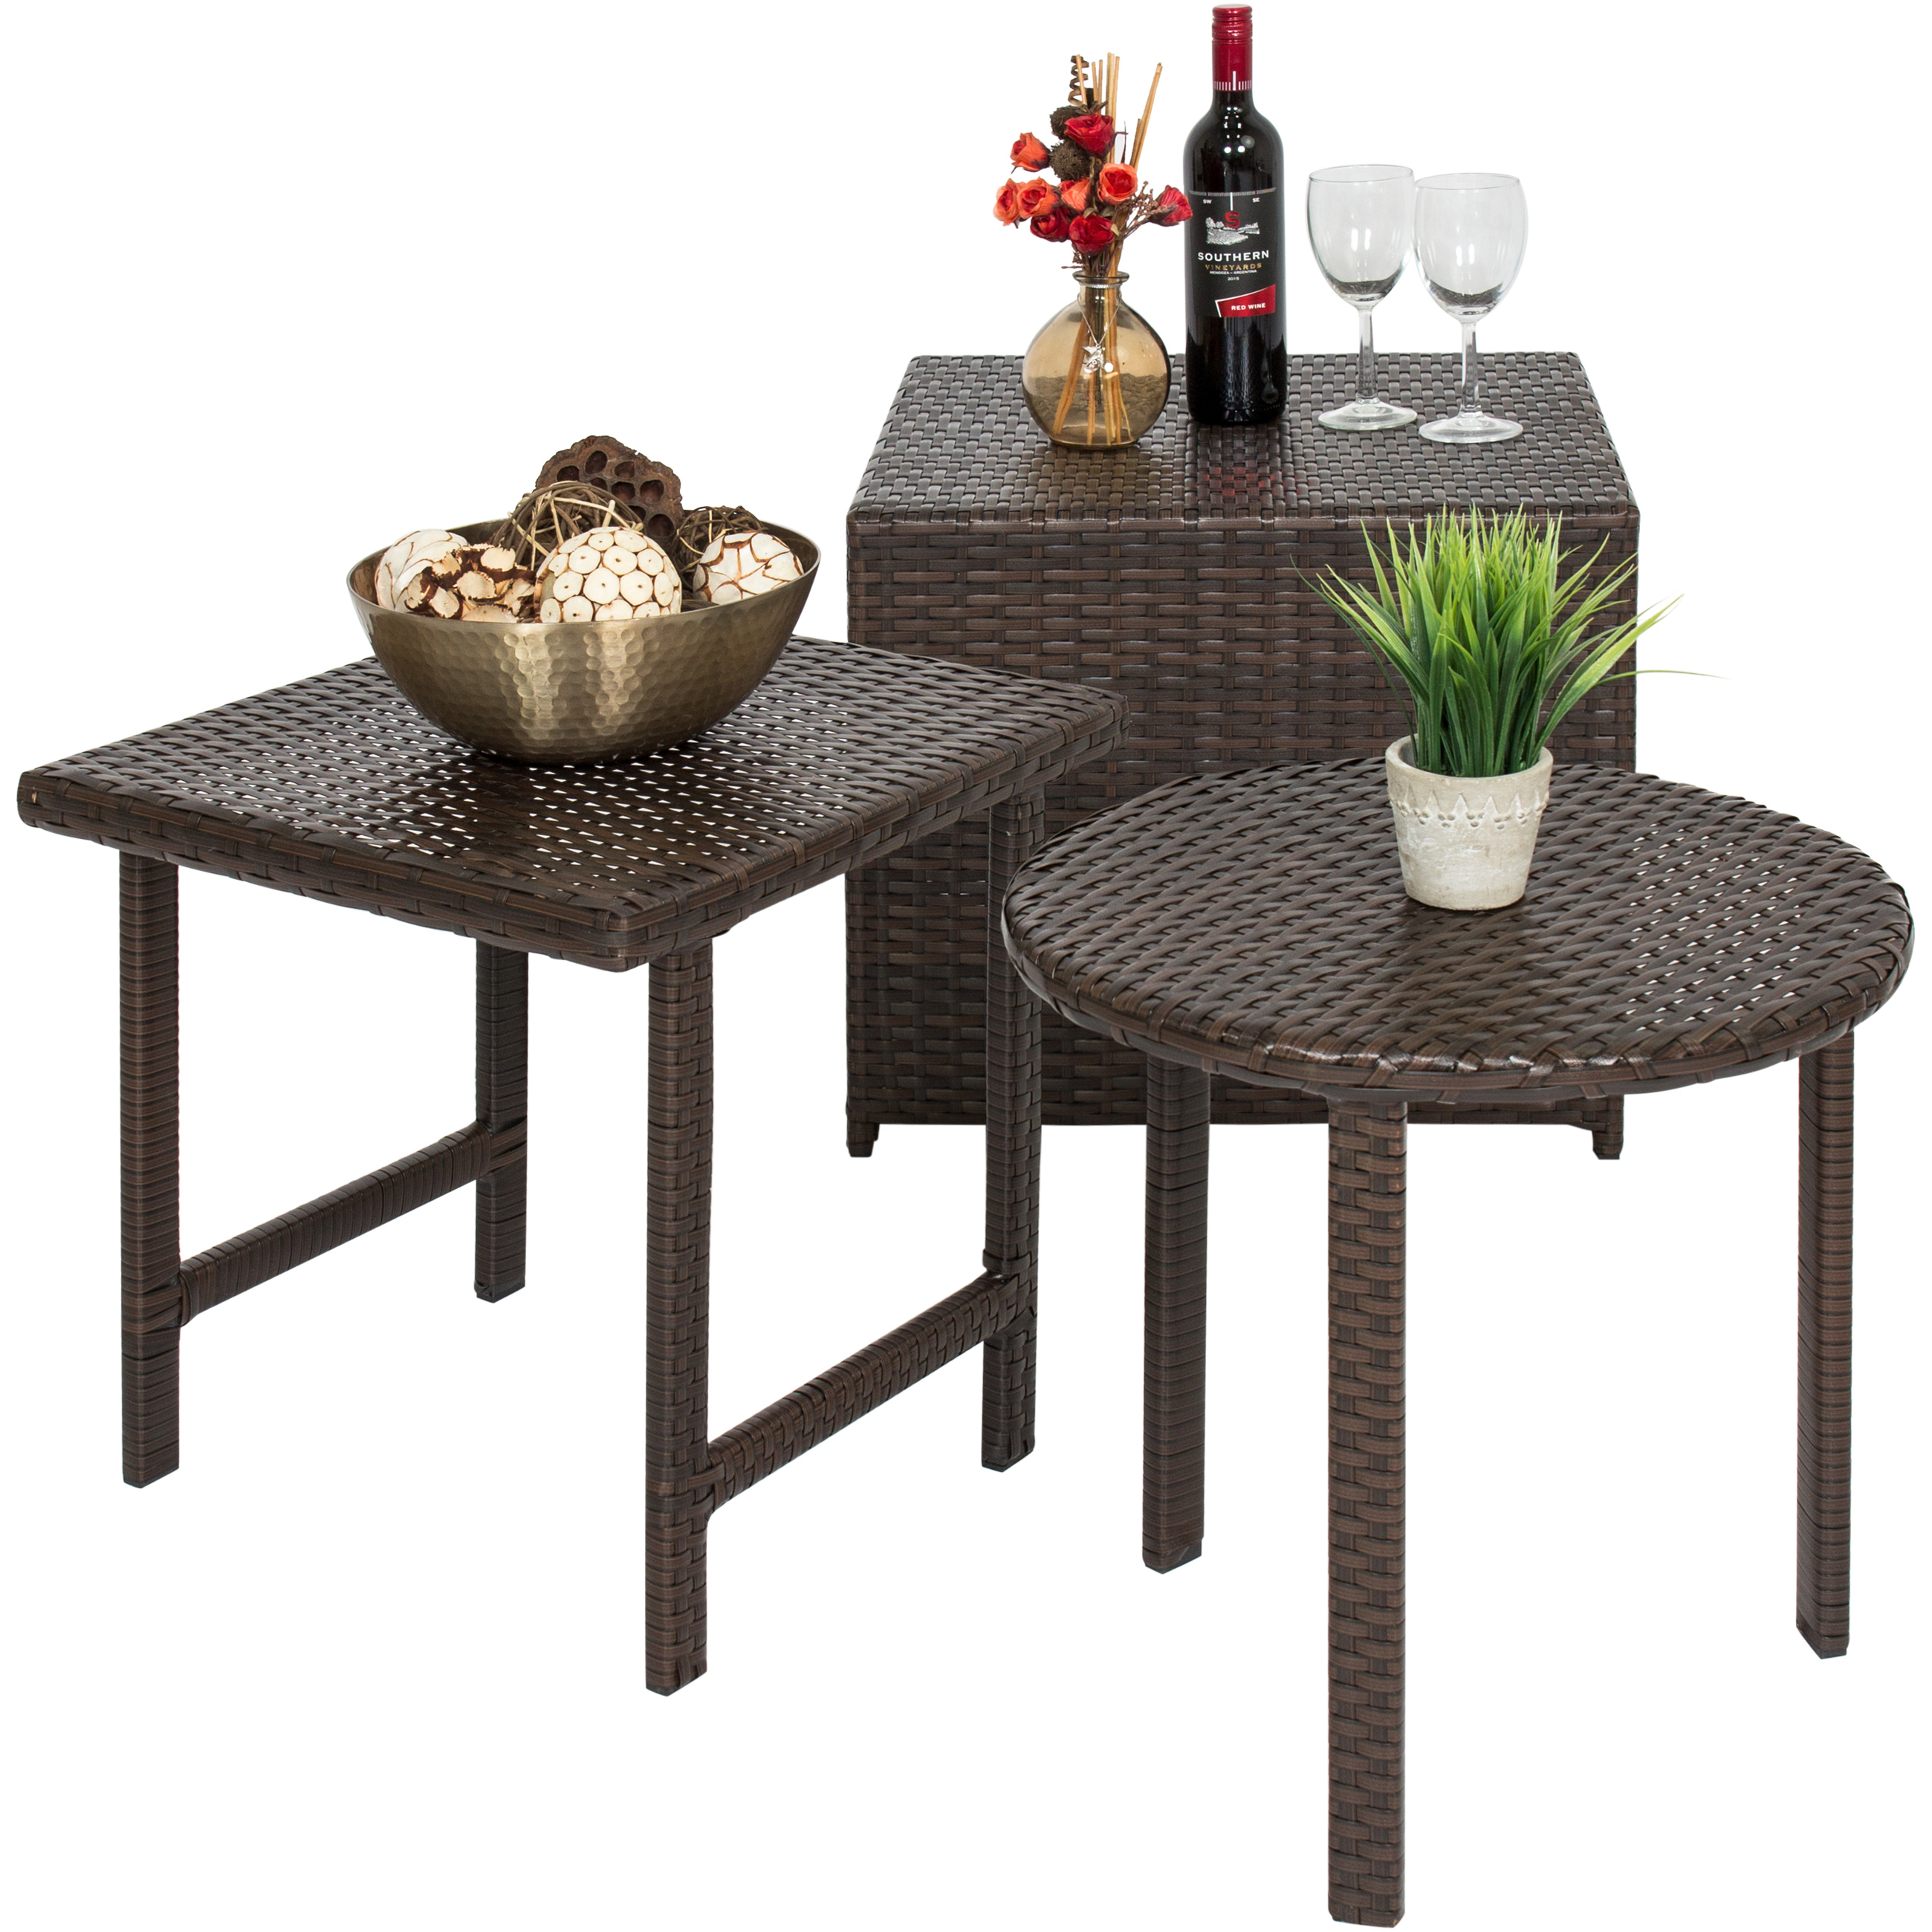 best choice products outdoor patio furniture 3piece wicker table set